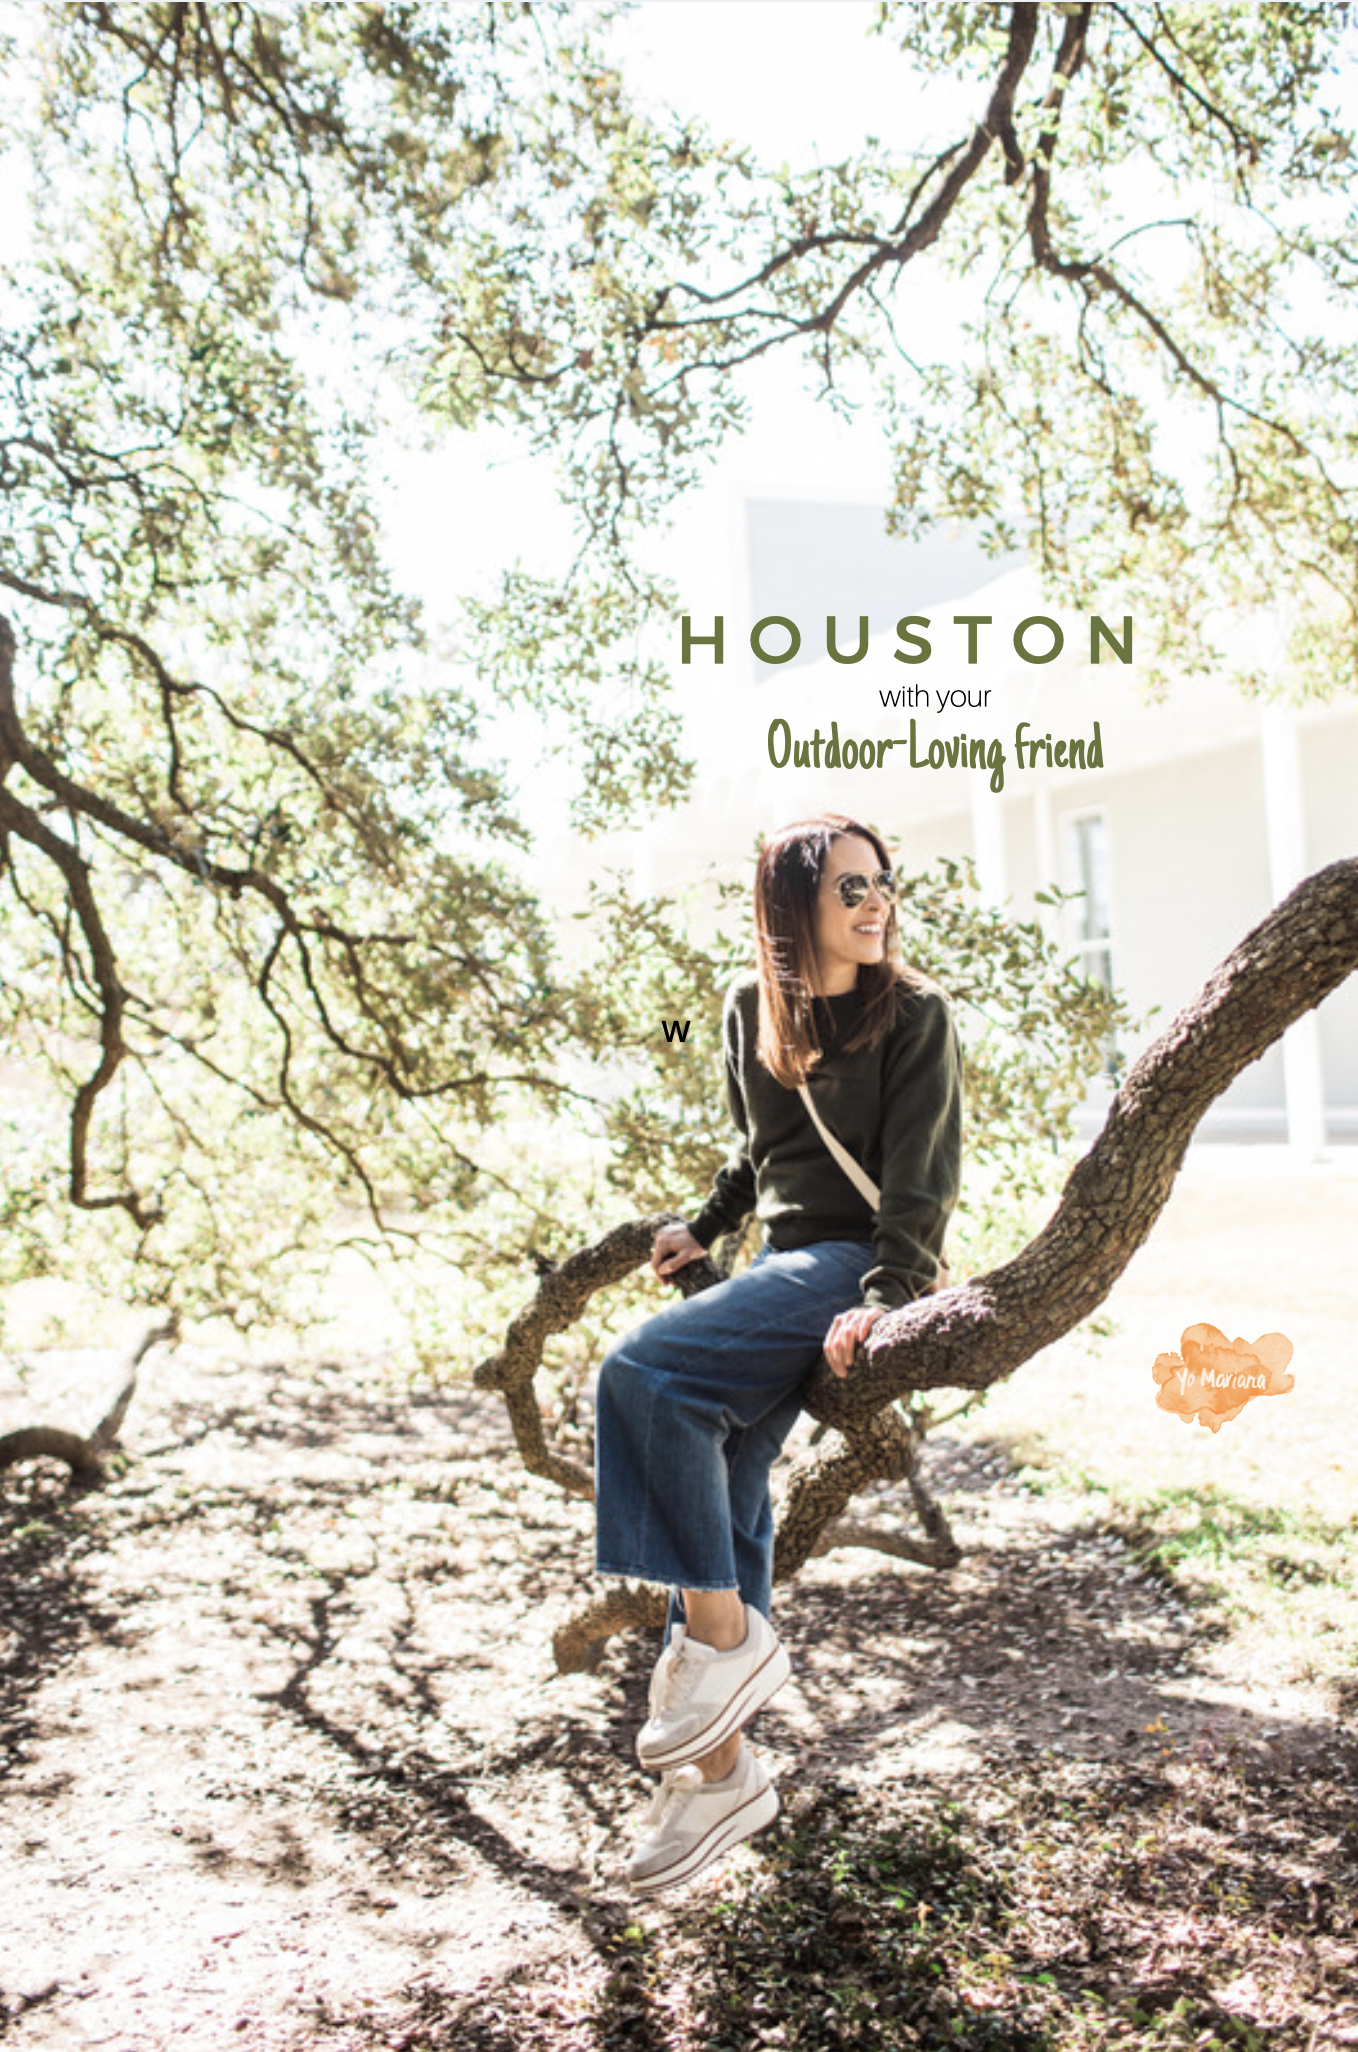 Houston with your outdoor loving friend by Yo Mariana Blog.png